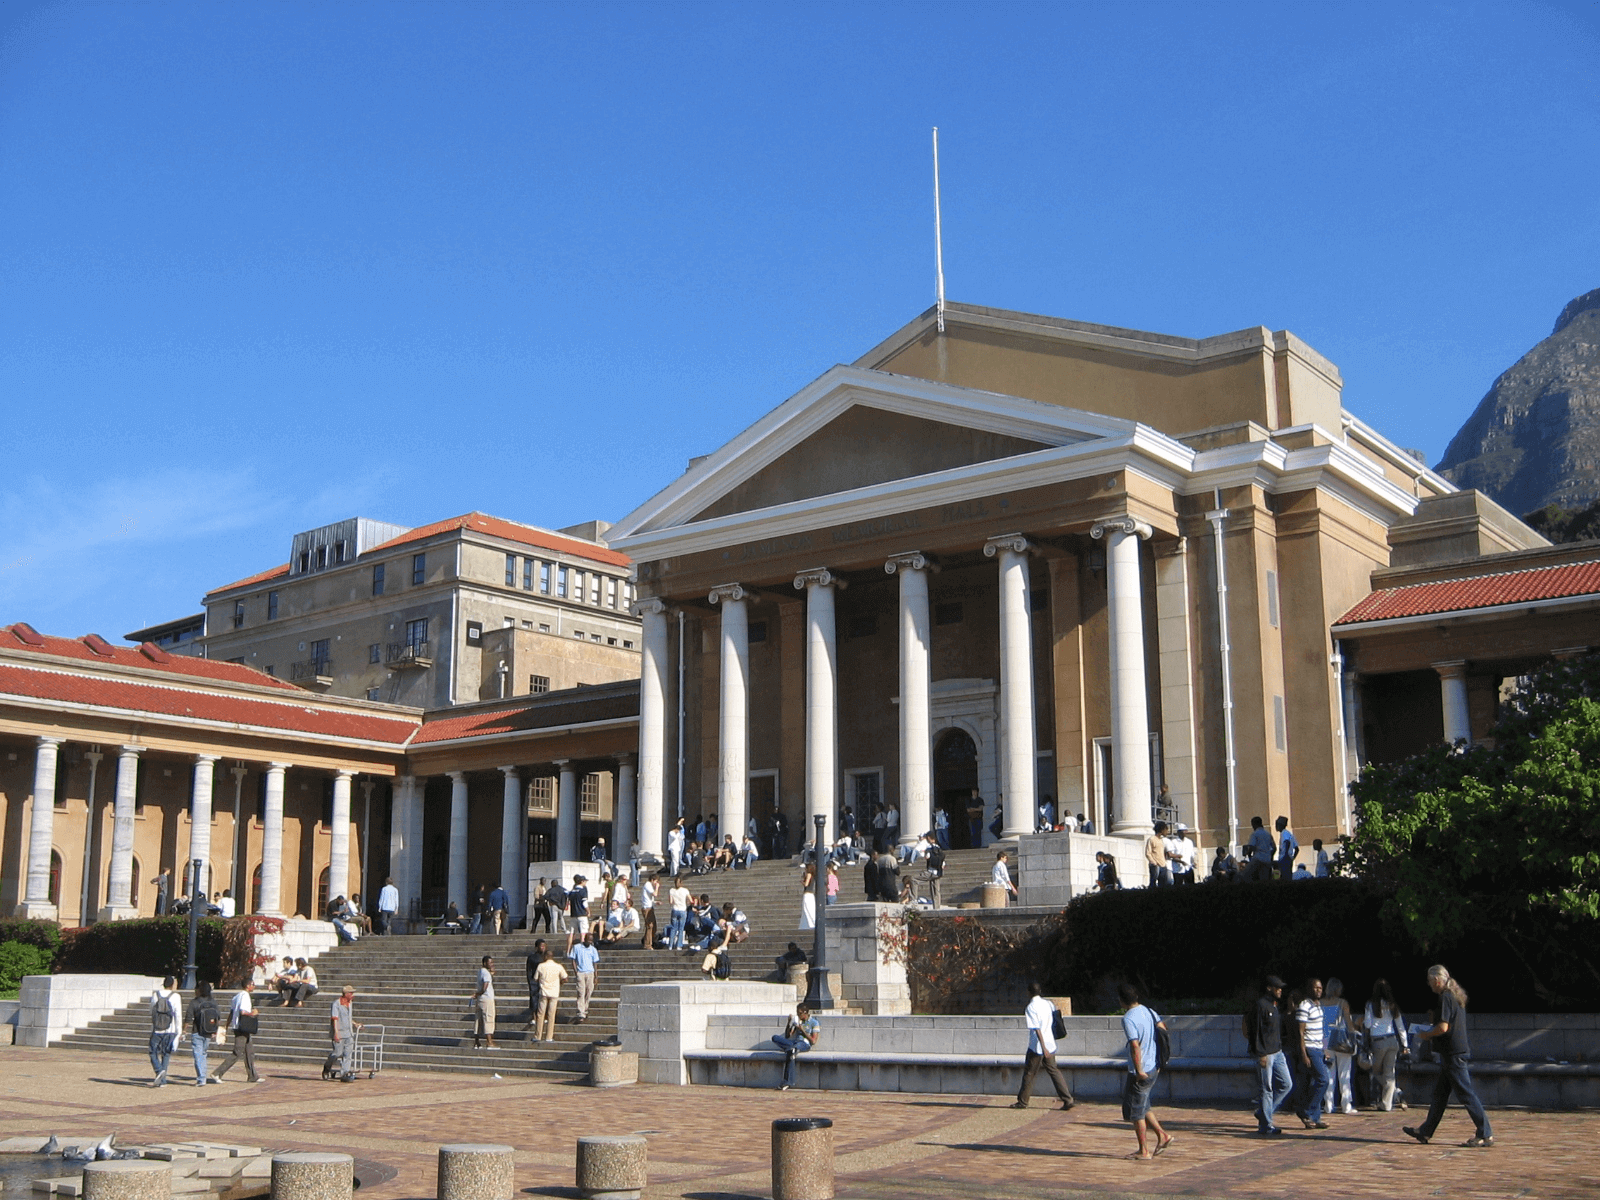 University of Cape Town study fees (Campus)